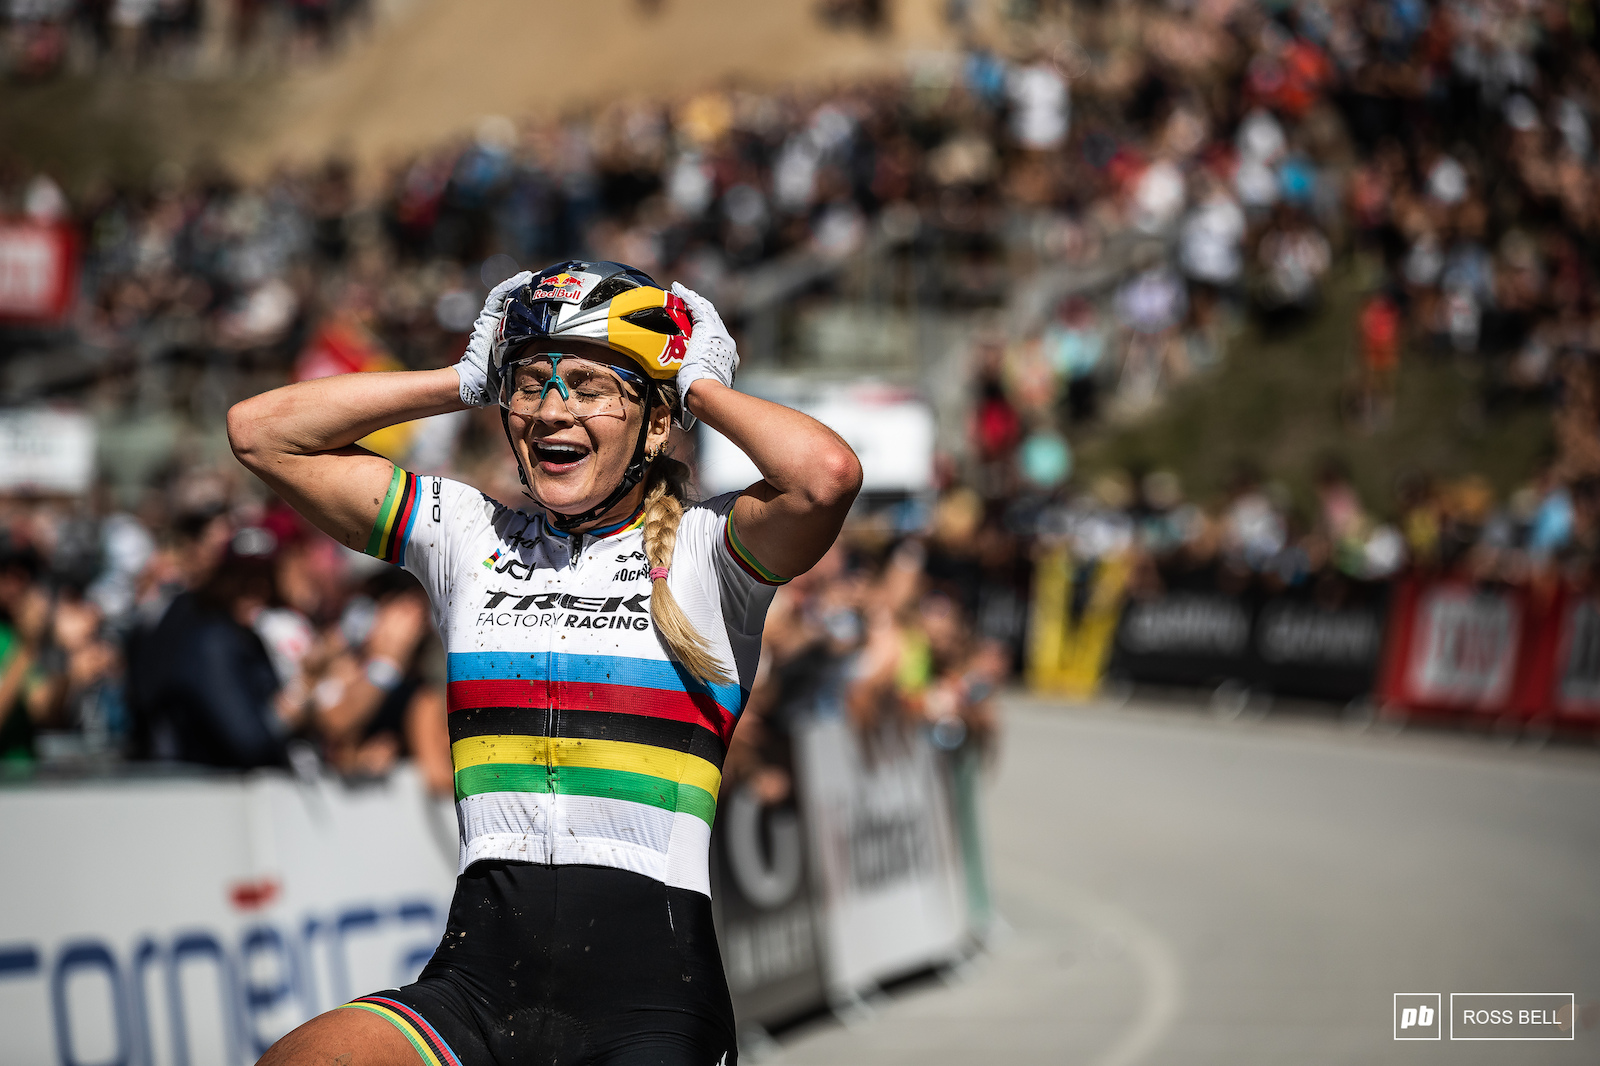 Sheer disbelief as Evie Richards takes her first elite World Cup win just a week after taking the rainbow stripes.